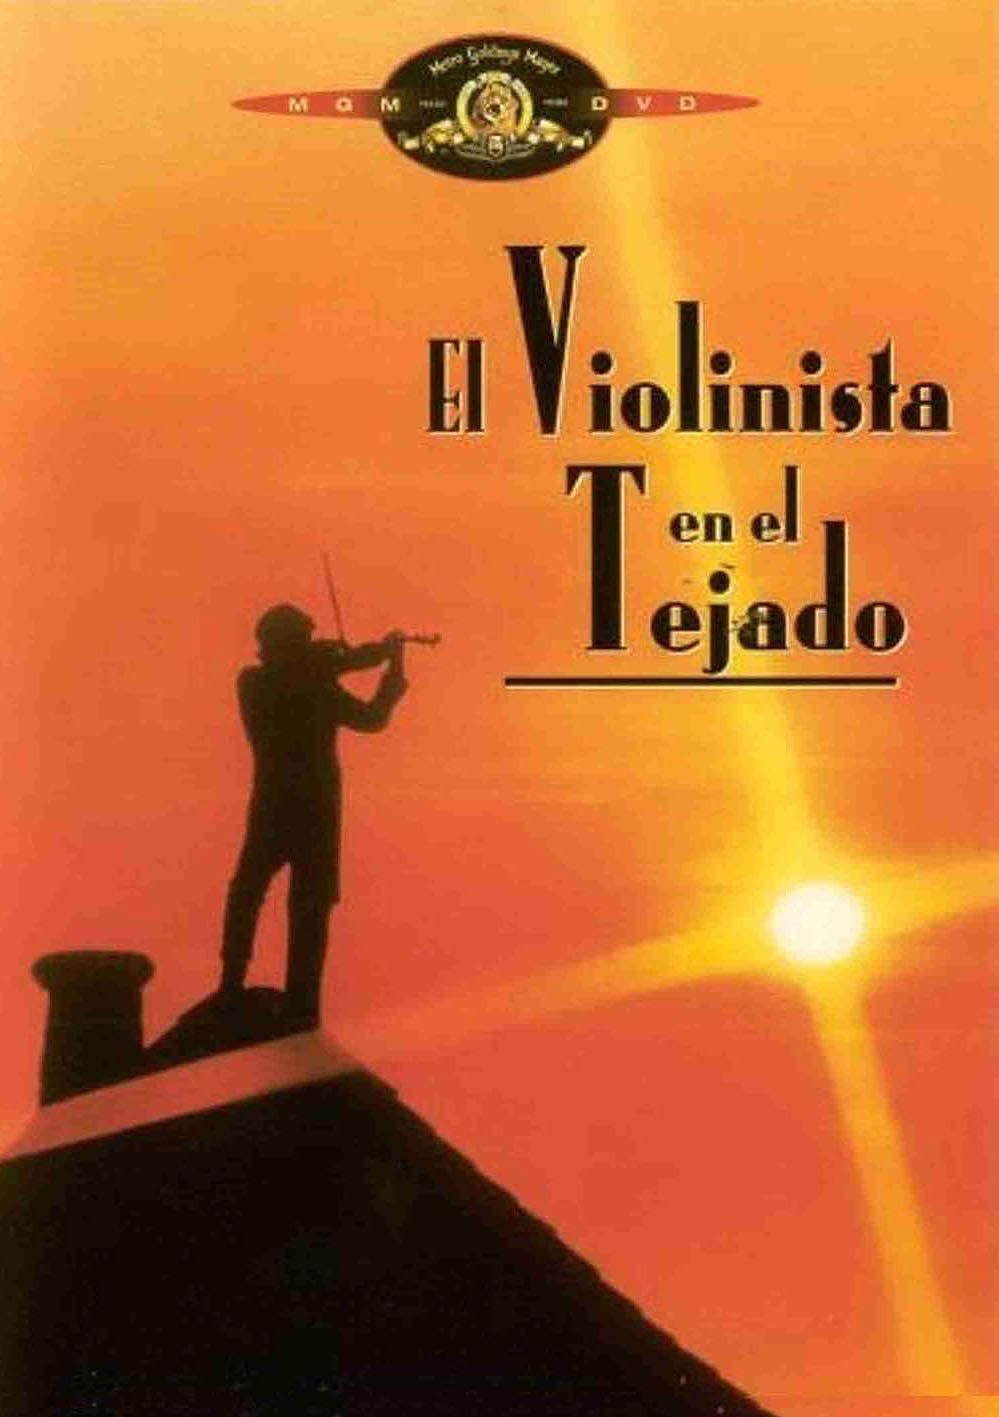 El Violinista En El Tejado Video Fiddler On The Roof Produced And Directed By Norman Jewison Screenplay By Joseph Stein Adapted From His Stage Play